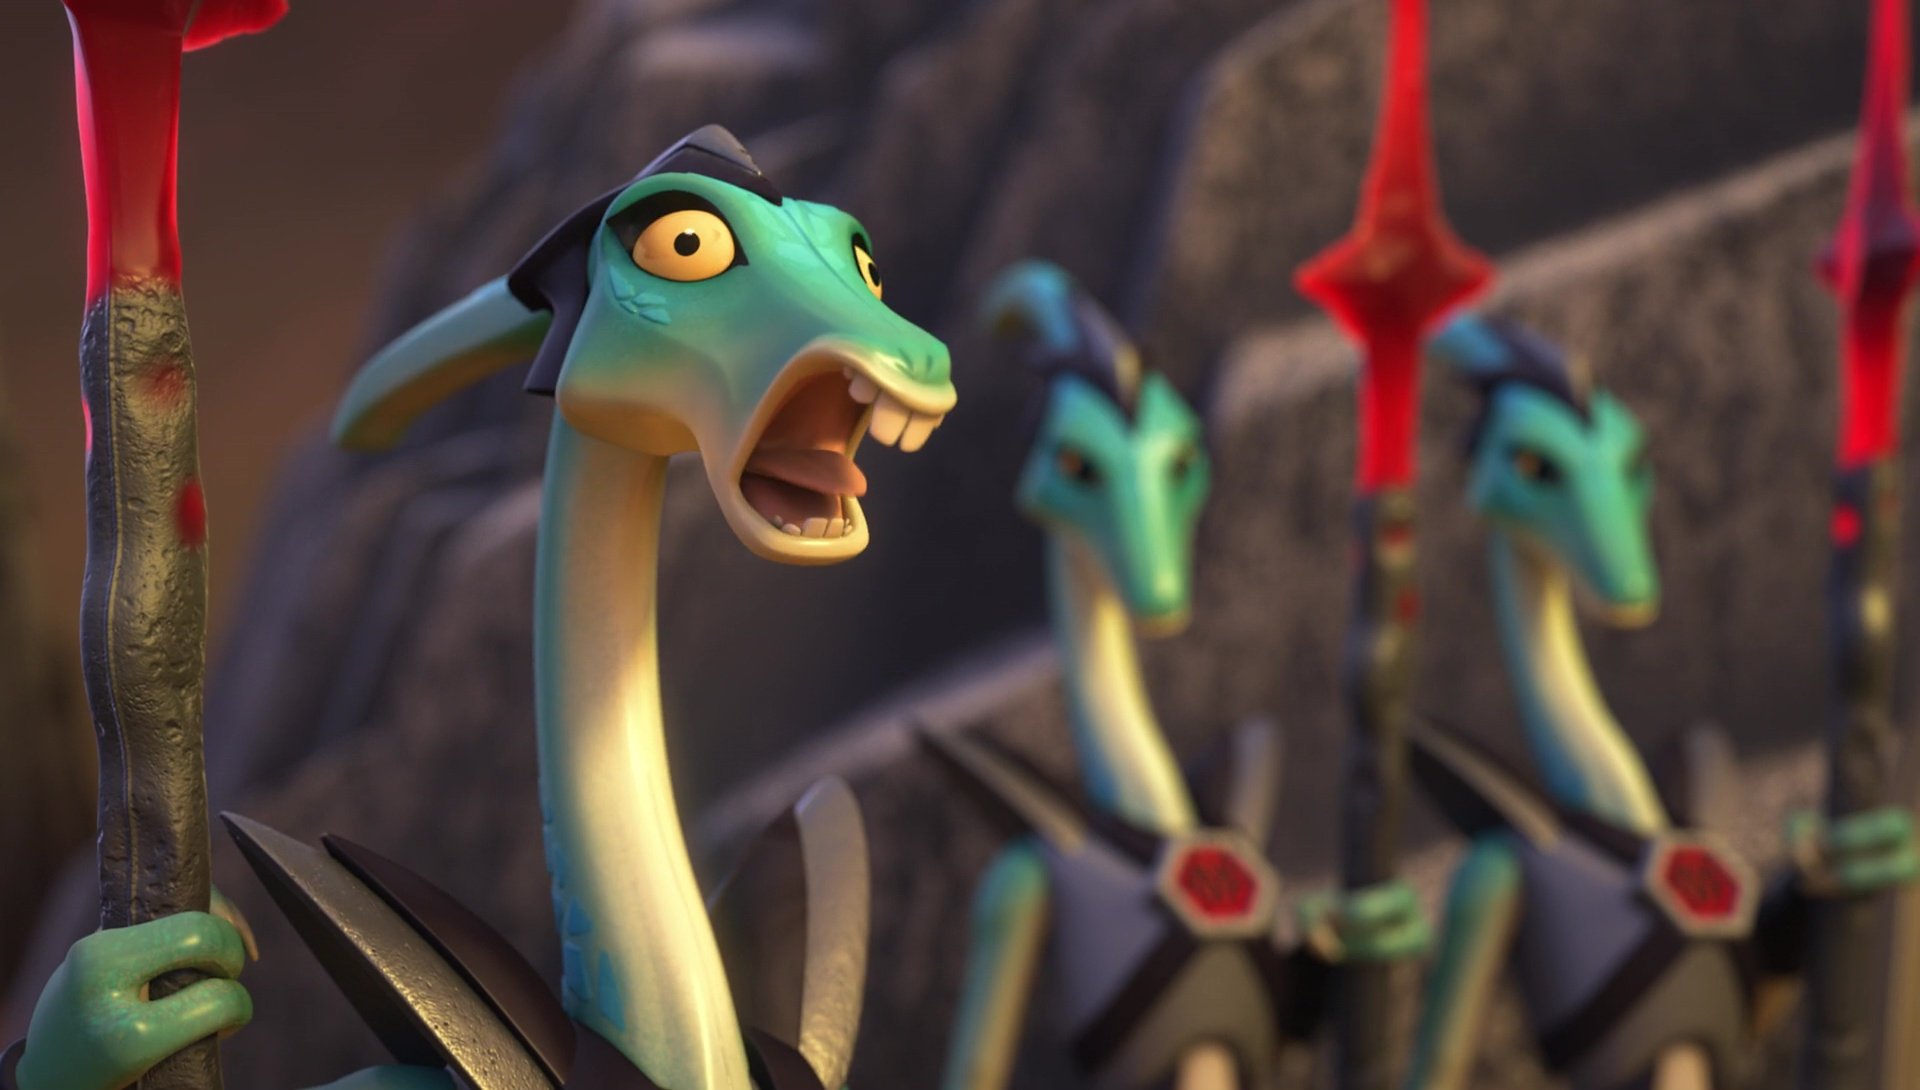 elysian-guards-personnage-toy-story-hors-du-temps-01